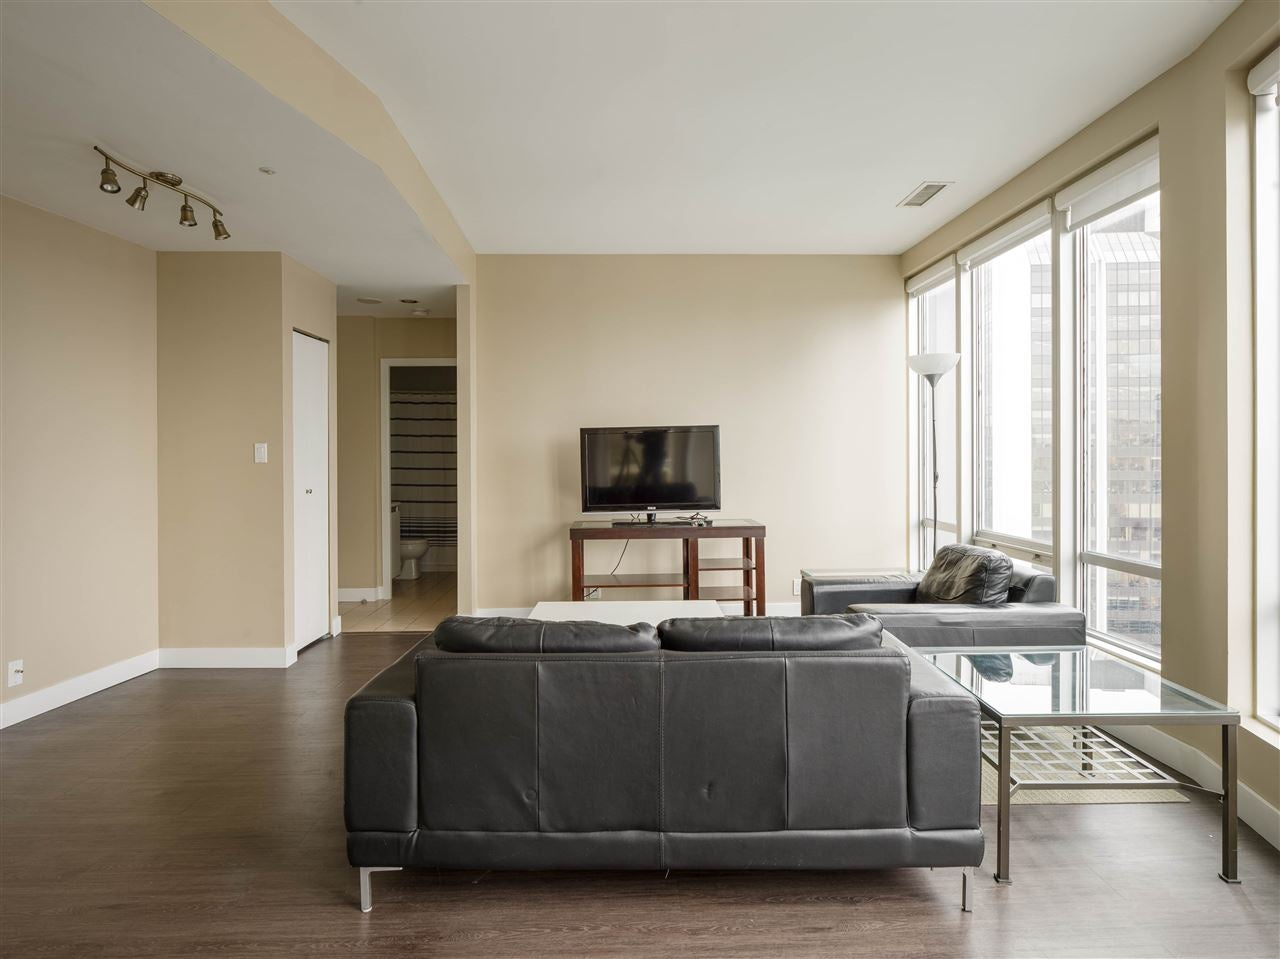 1204 989 NELSON STREET - Downtown VW Apartment/Condo for sale, 2 Bedrooms (R2527127) - #7